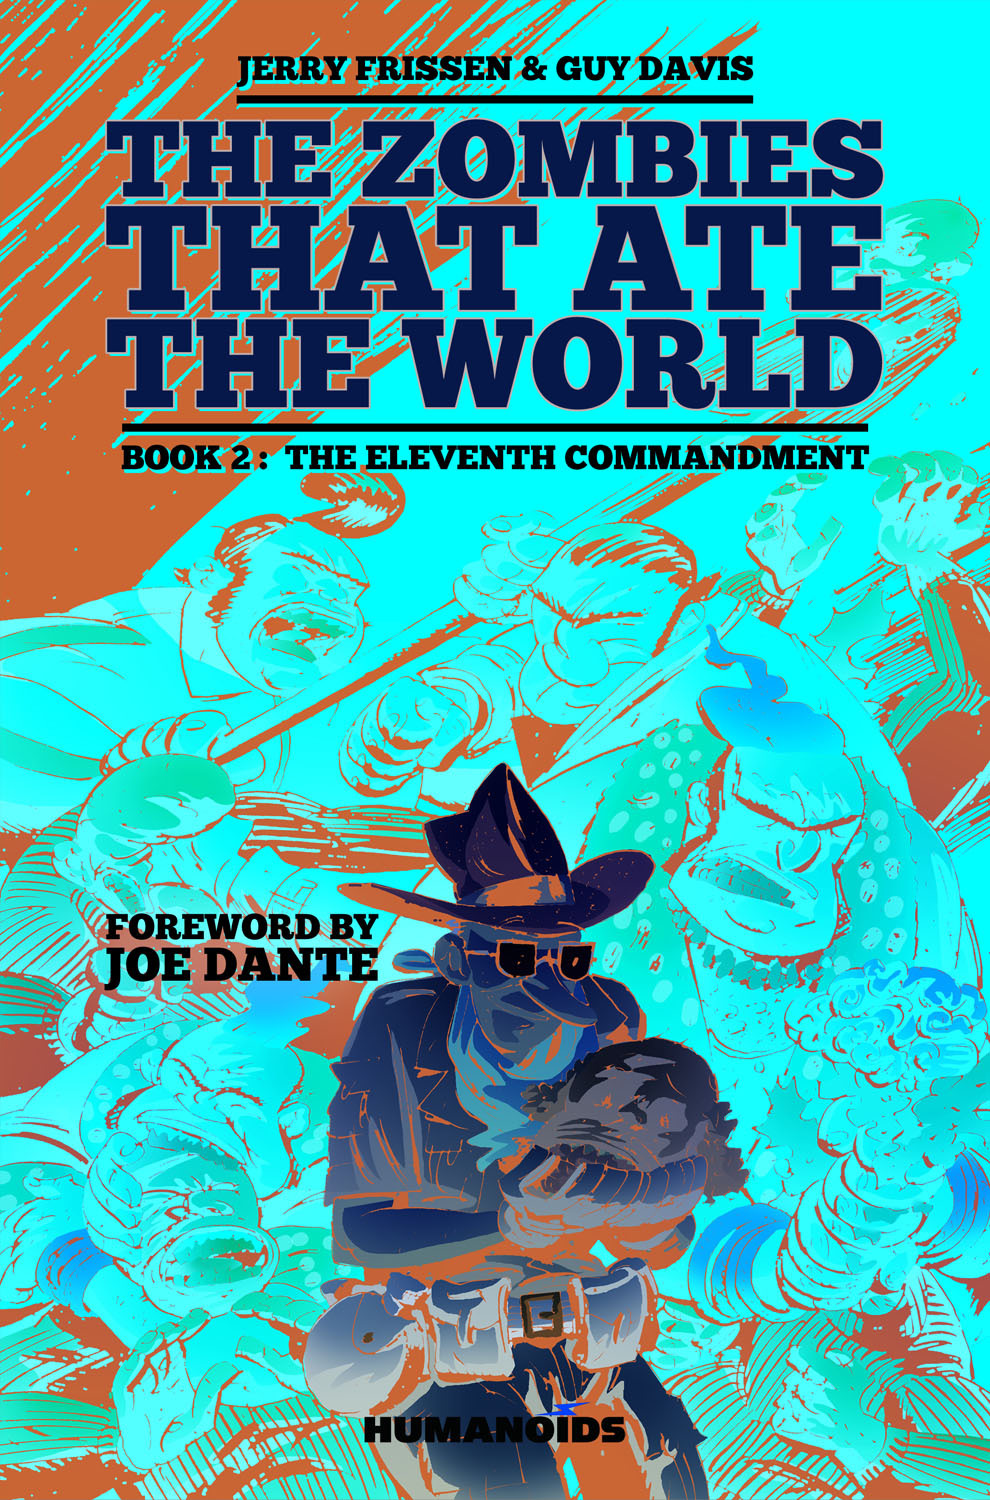 The Zombies that Ate the World - Hardcover Album : Book 2: The Eleventh Commandment